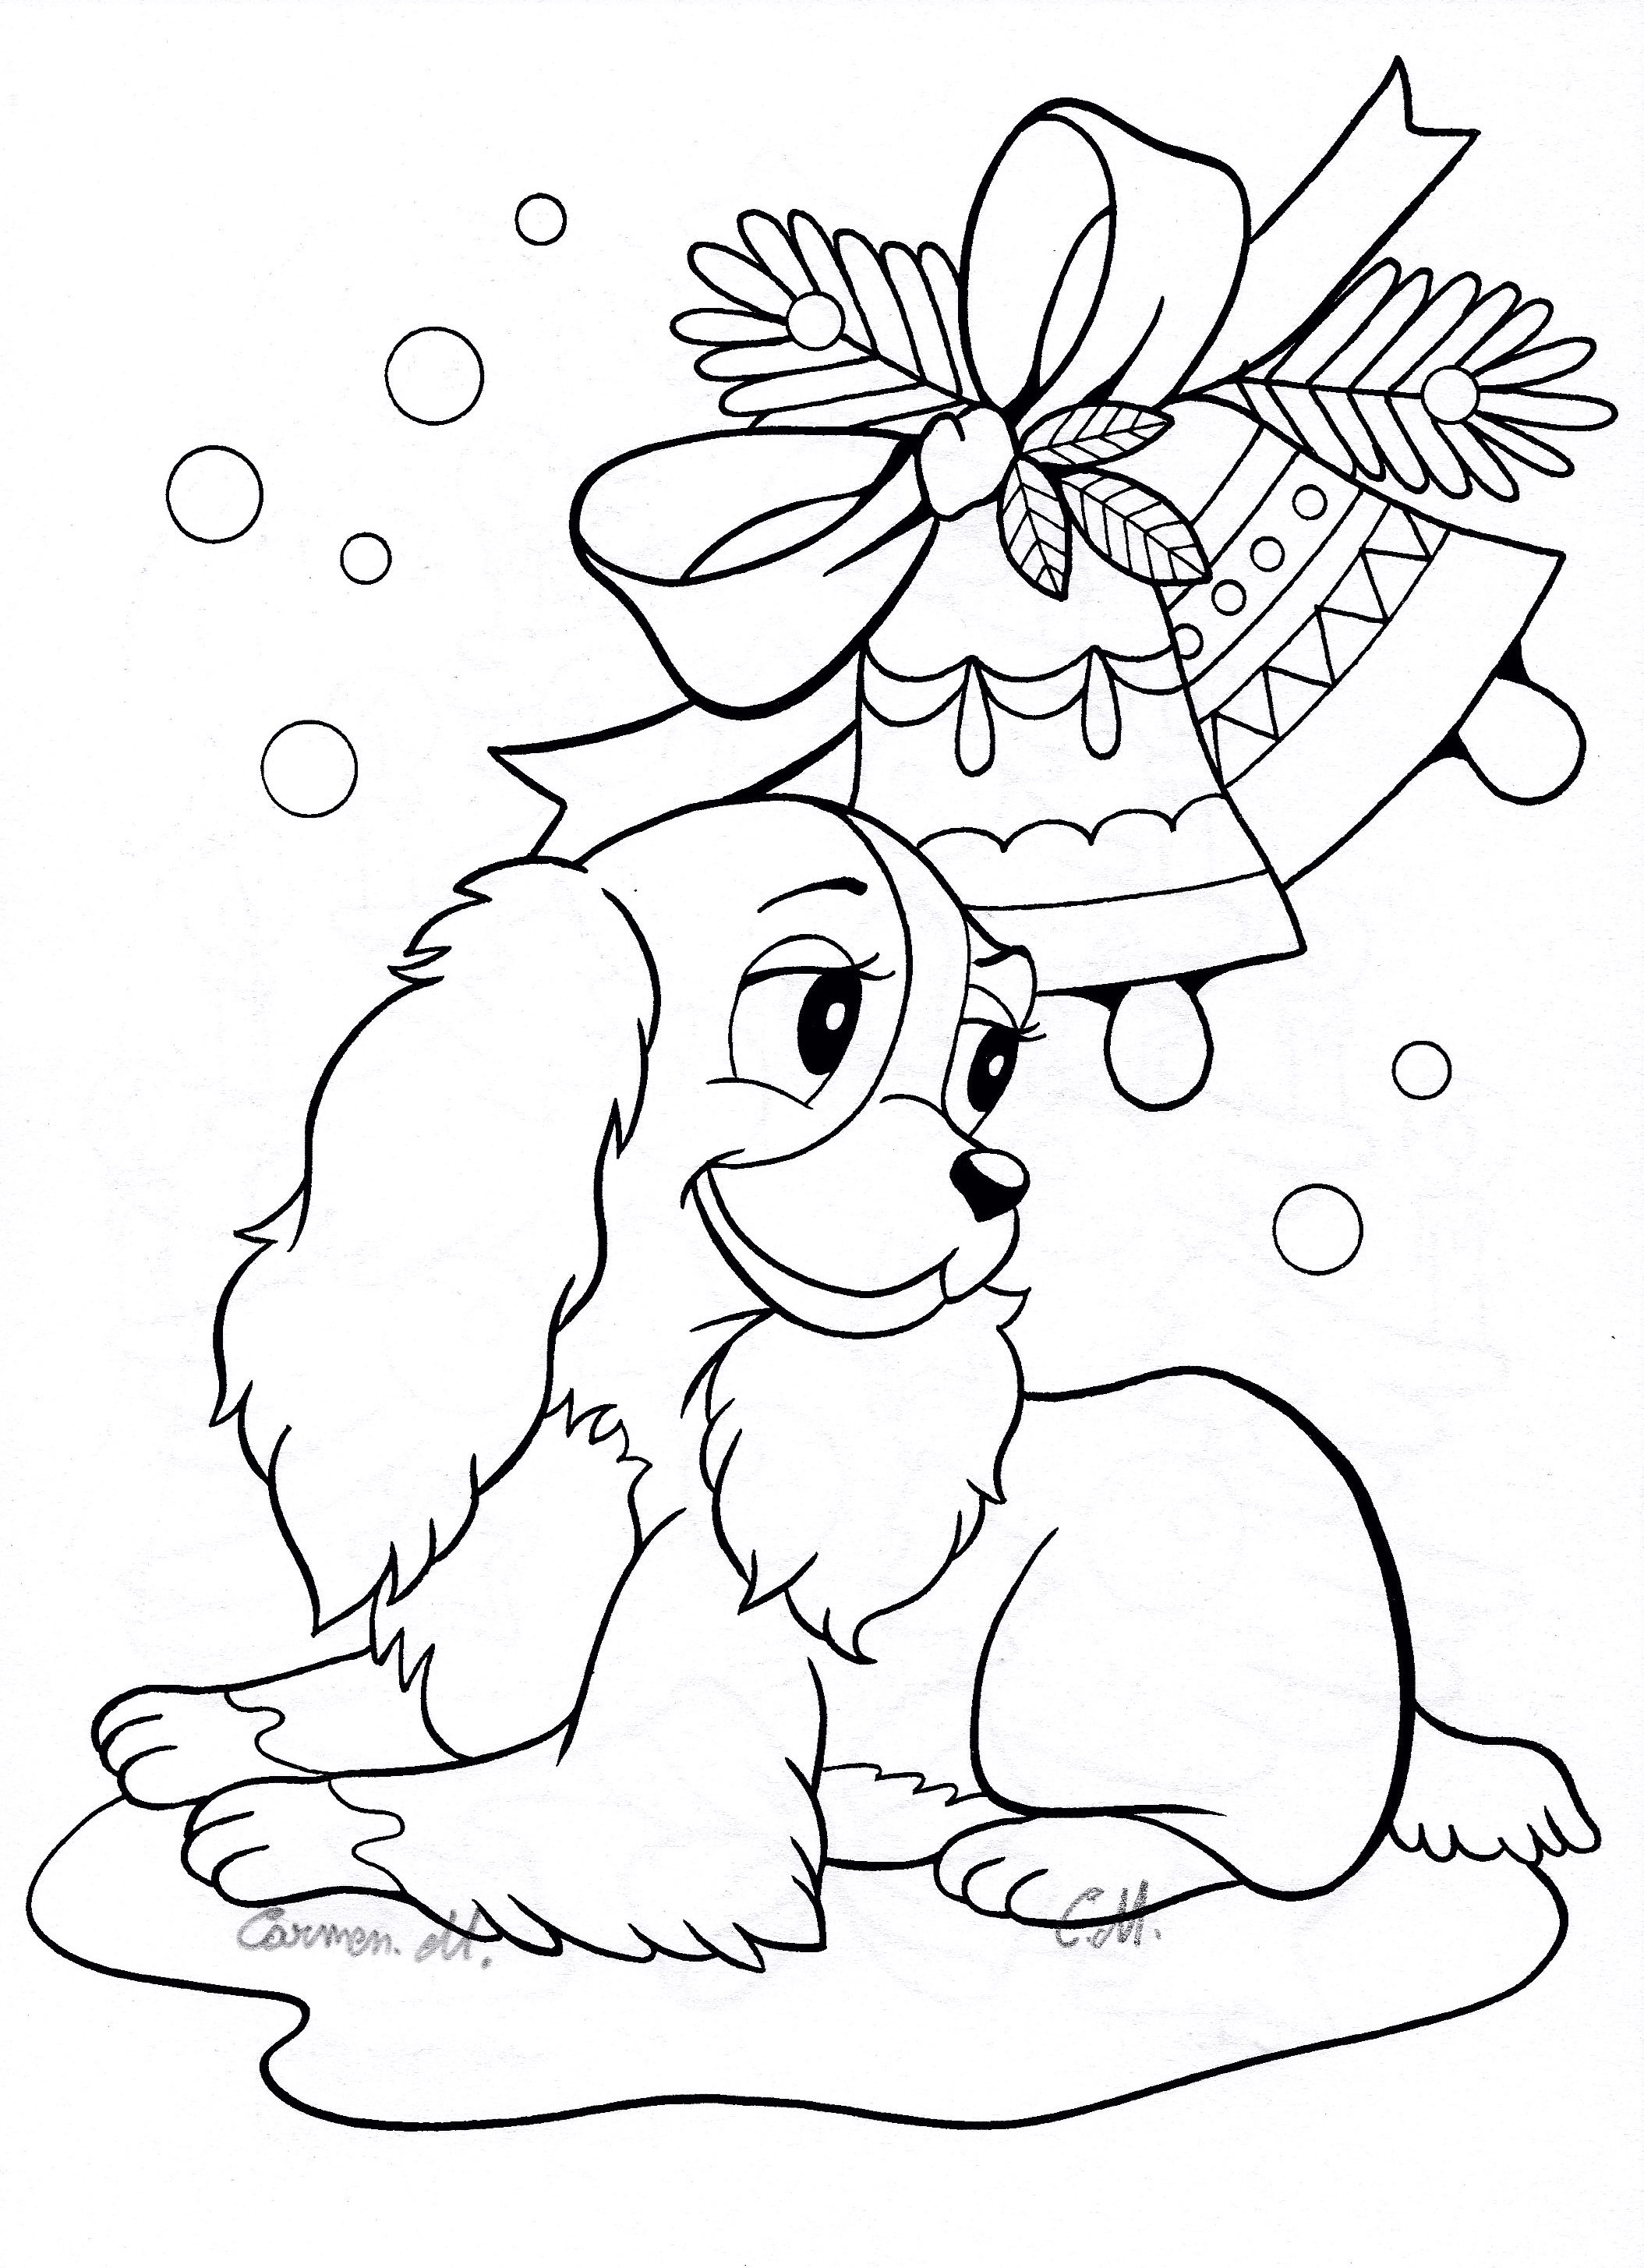 Christmas Coloring Pages Kawaii With Penguin For Kids Awesome Free